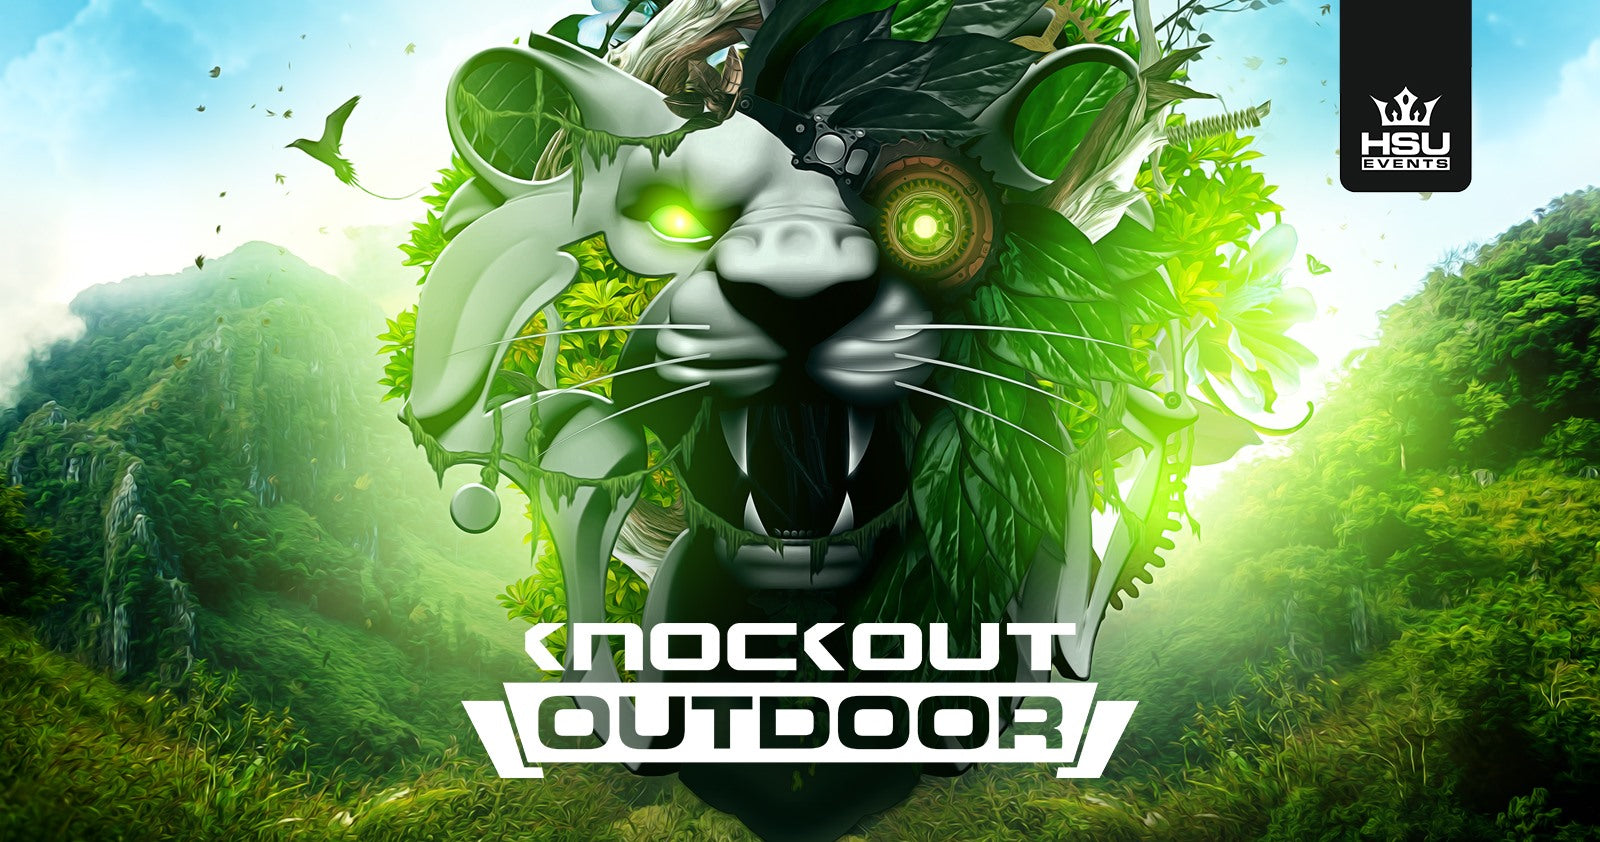 Knockout Outdoor - The Biggest and Best